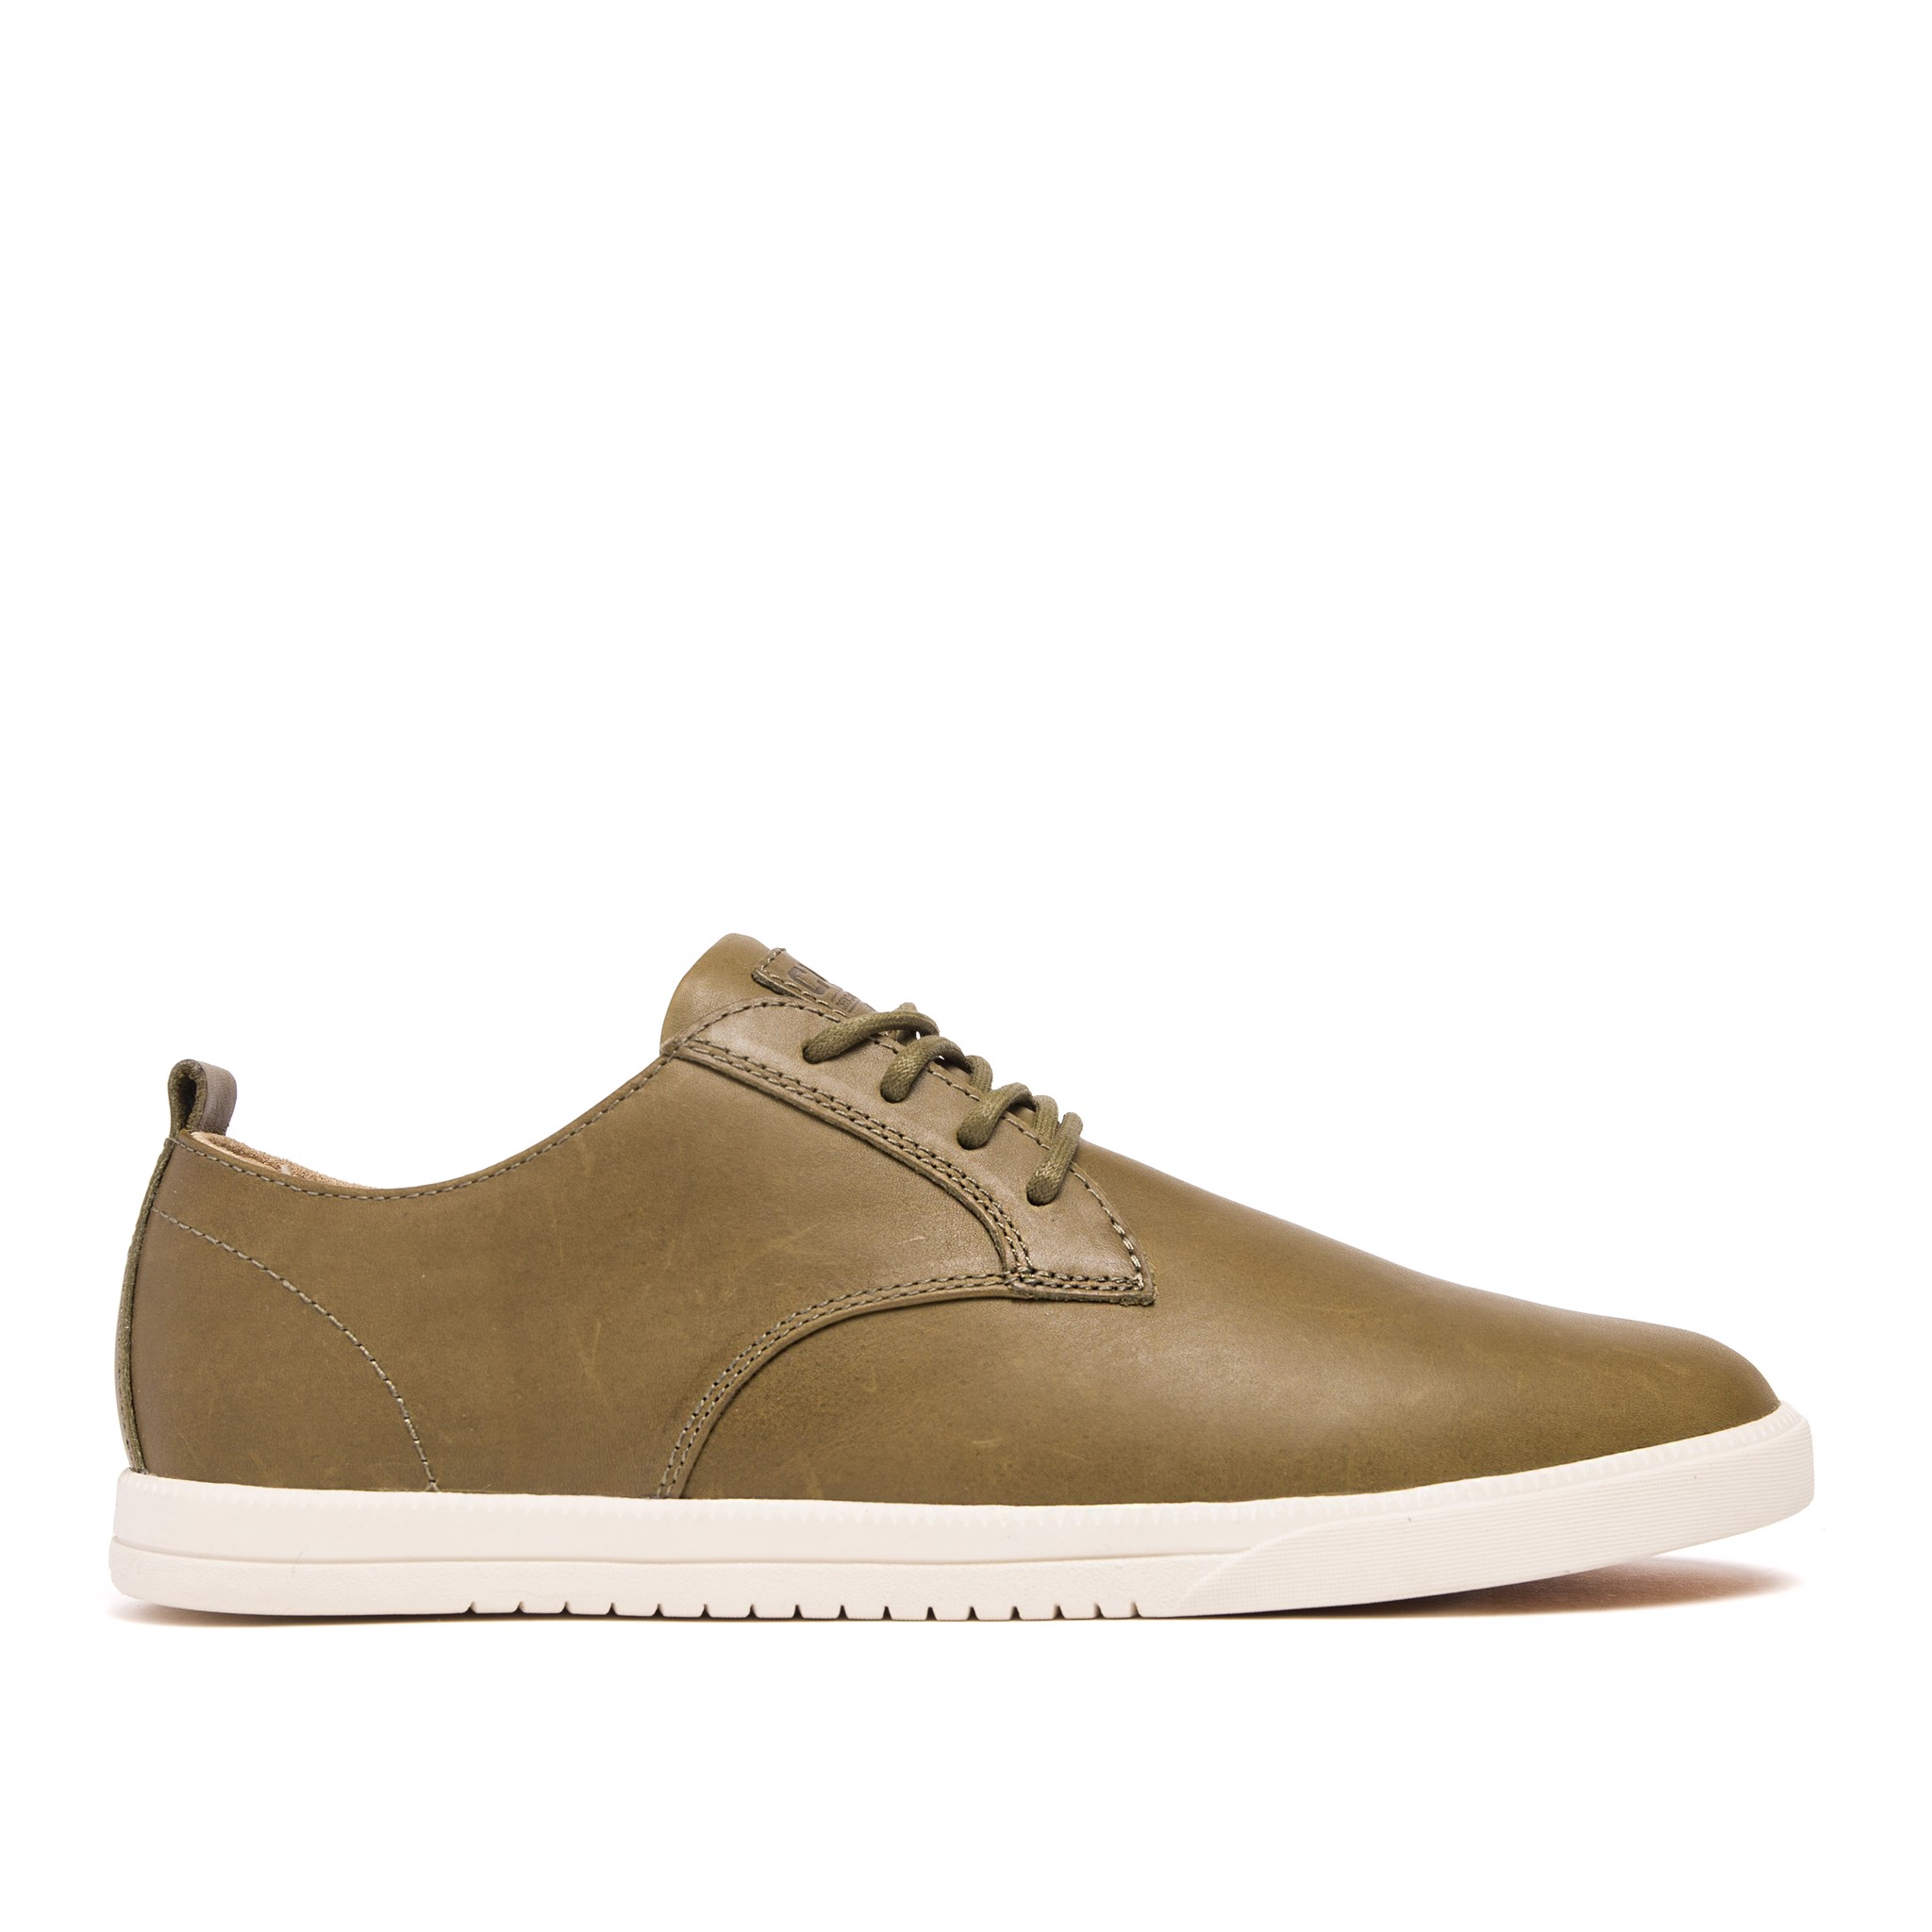 GIÀY SNEAKERS NAM ELLINGTON LEATHER CLAE